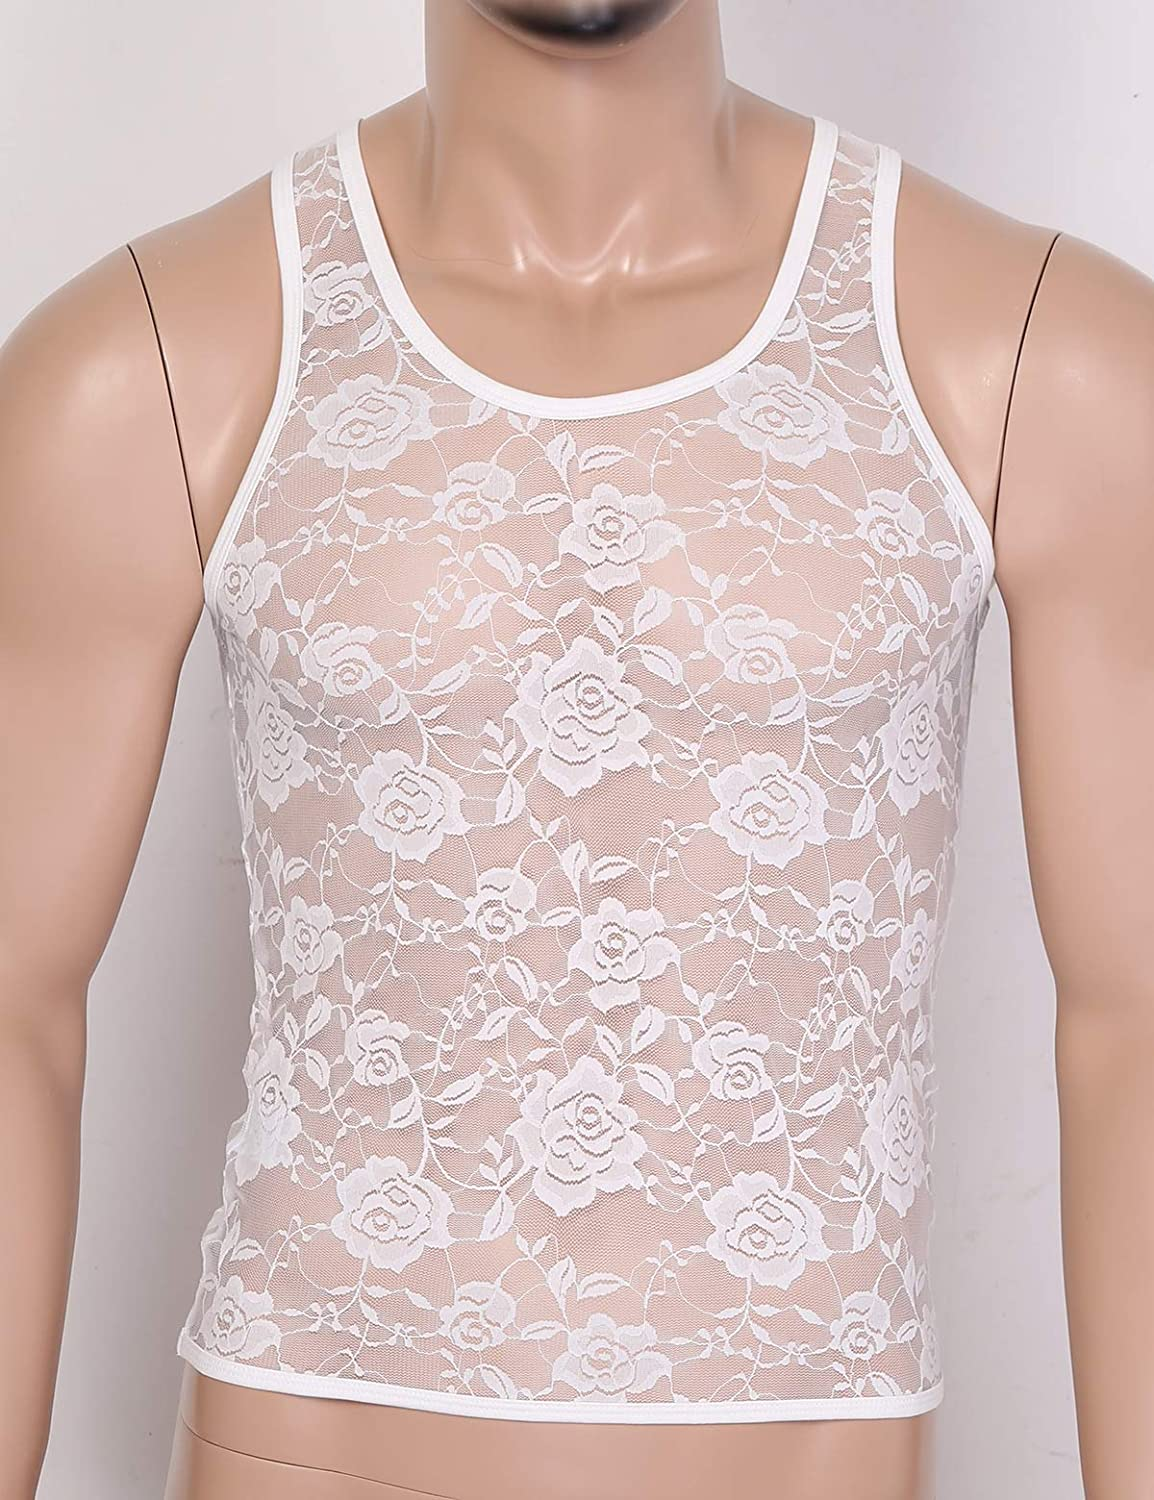 inhzoy Mens Sheer Mesh See Through Lingerie Sleeveless Floral Lace Short Vest Muscle Fitted T-Shirt